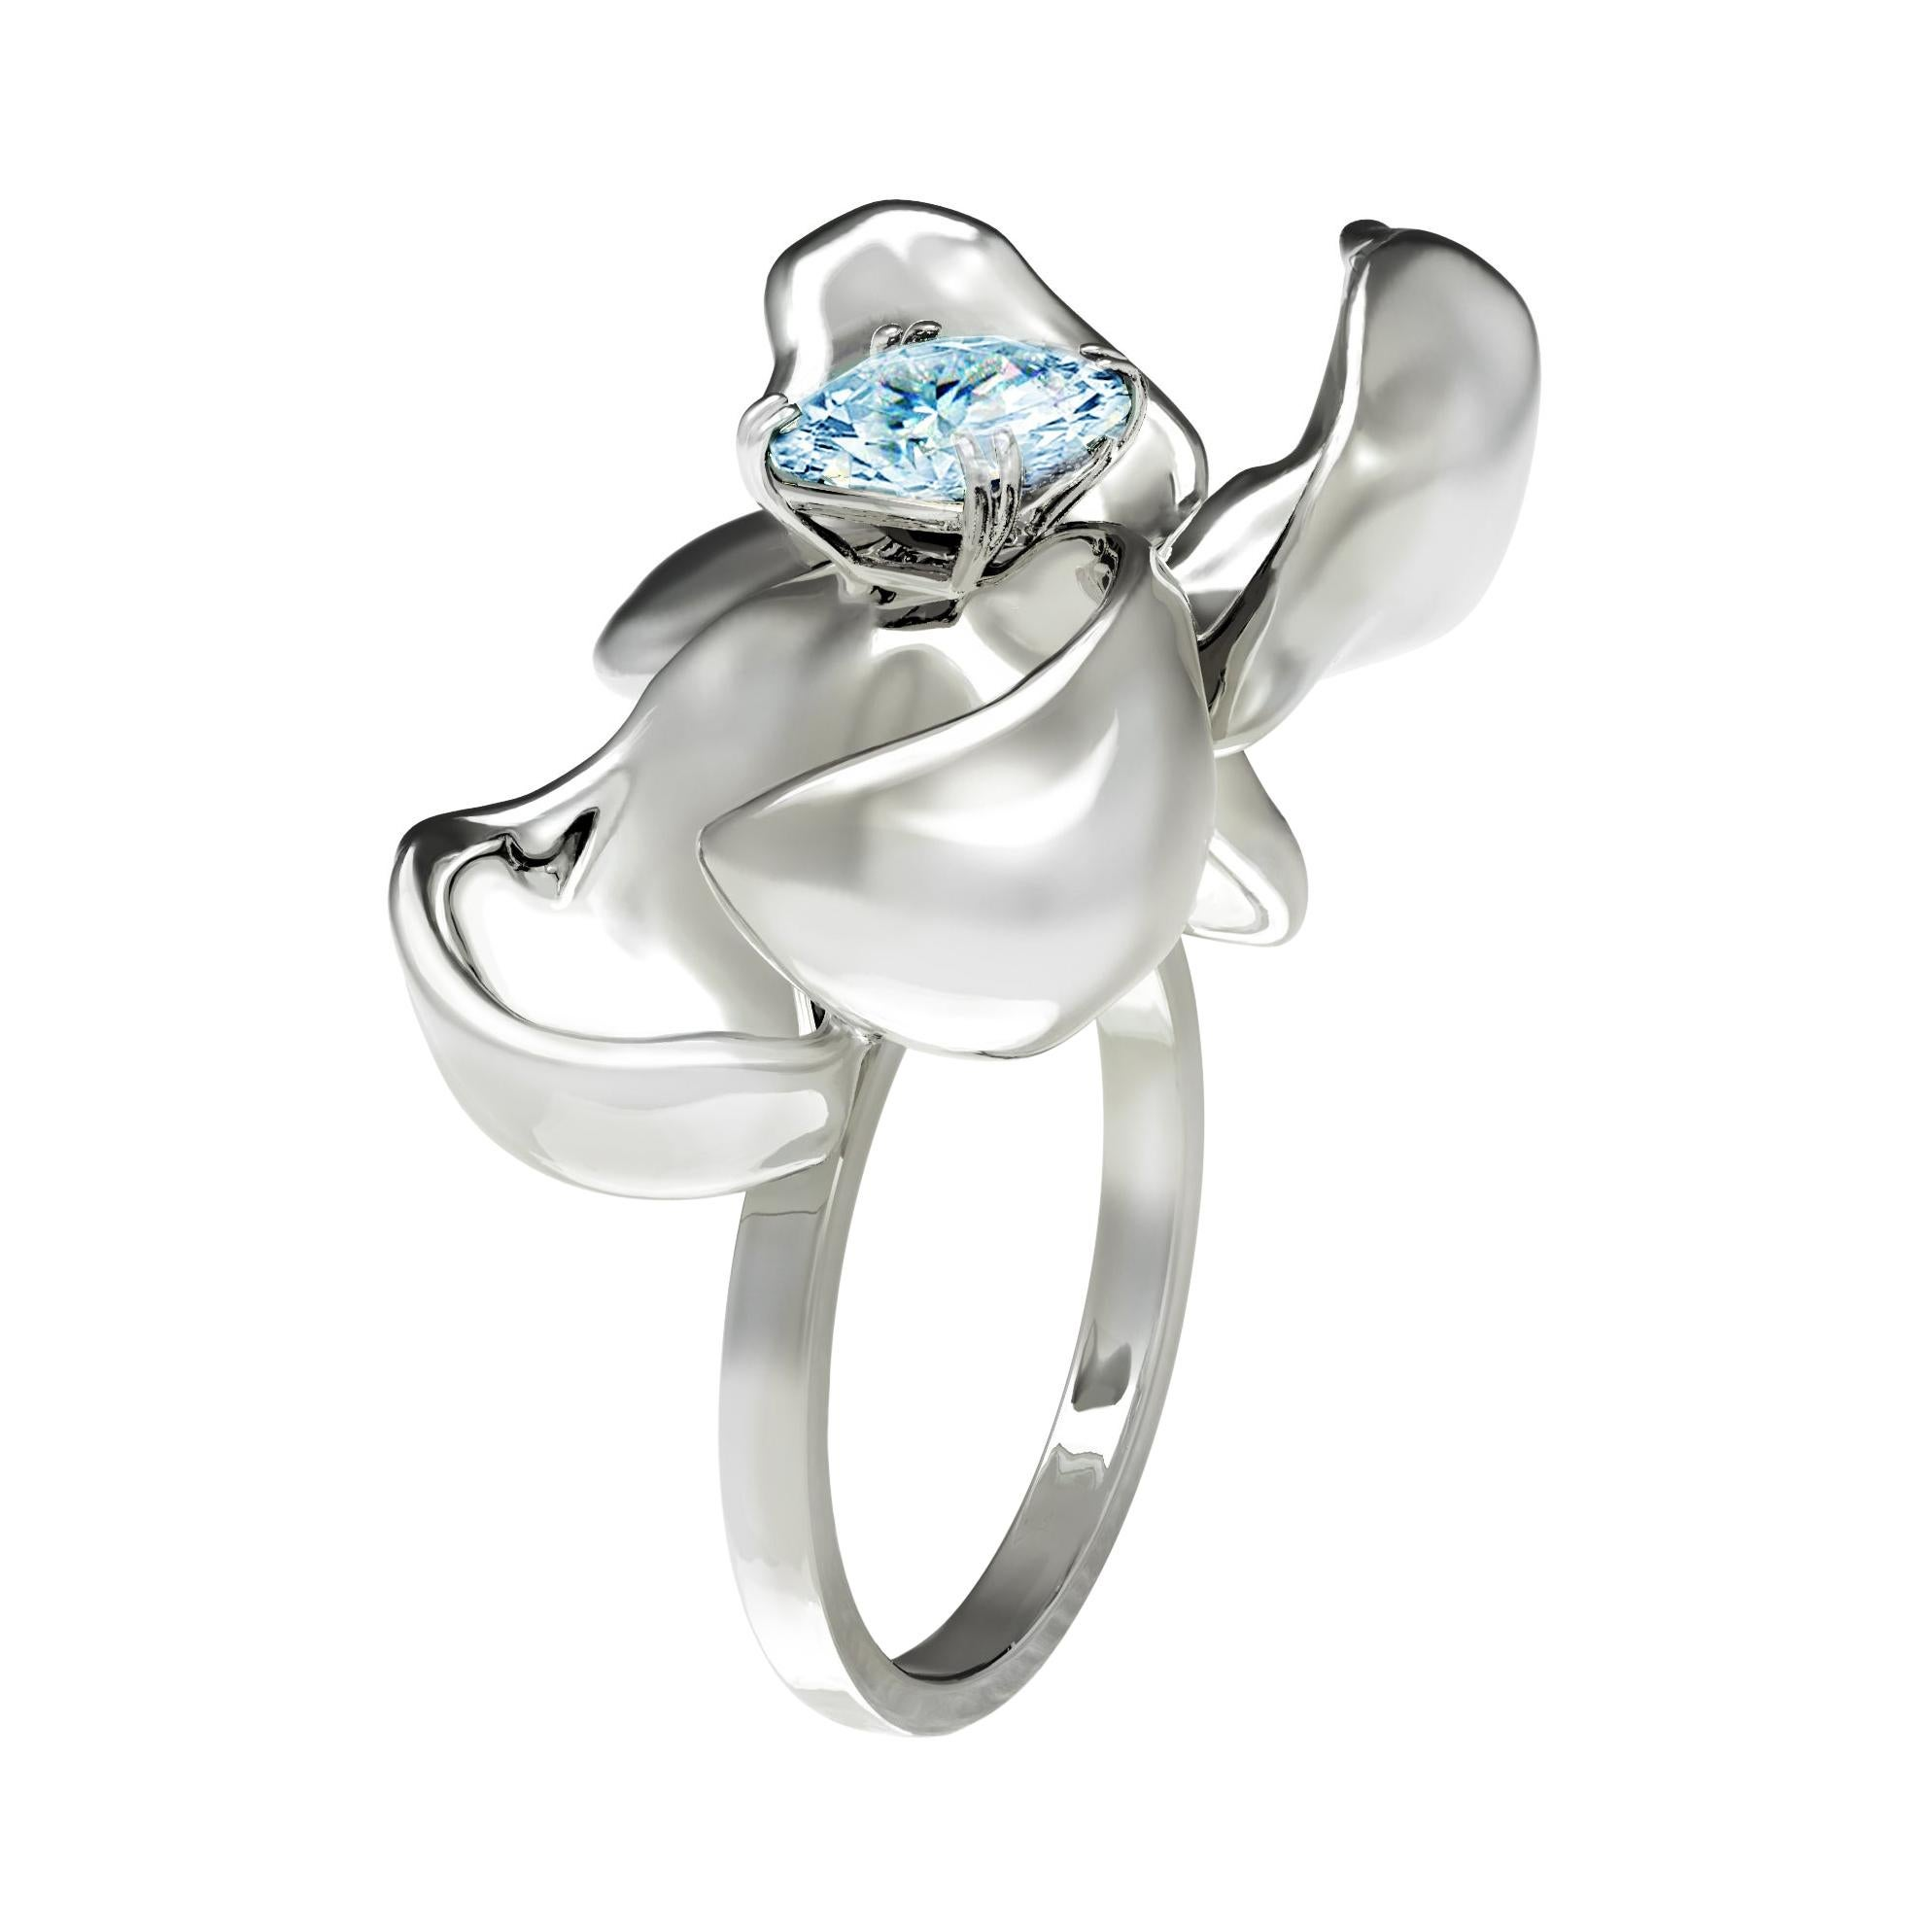 Sterling Silver Contemporary Ring with Paraiba Tourmaline